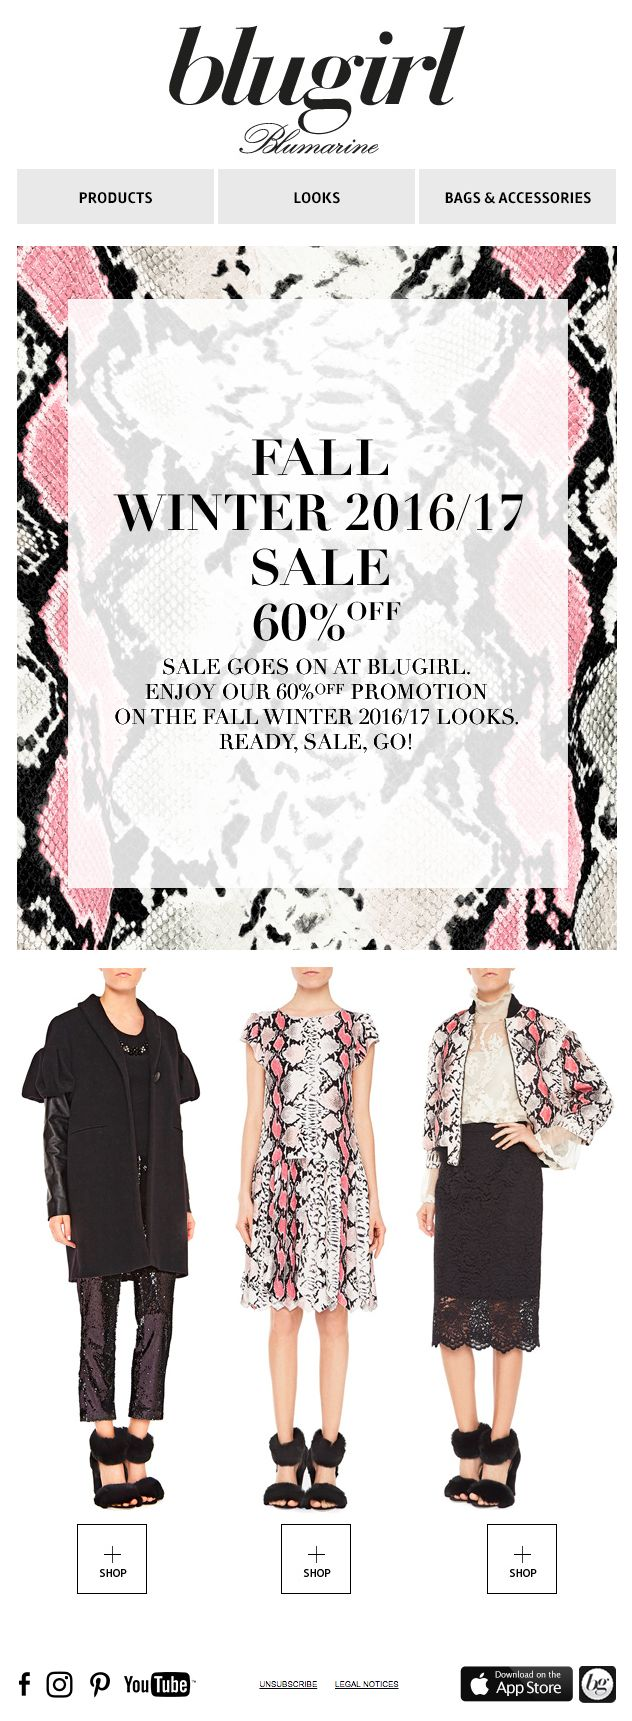 Blugirl Winter Sales • 60% off on the Fall Winter 2016/2017 Collections